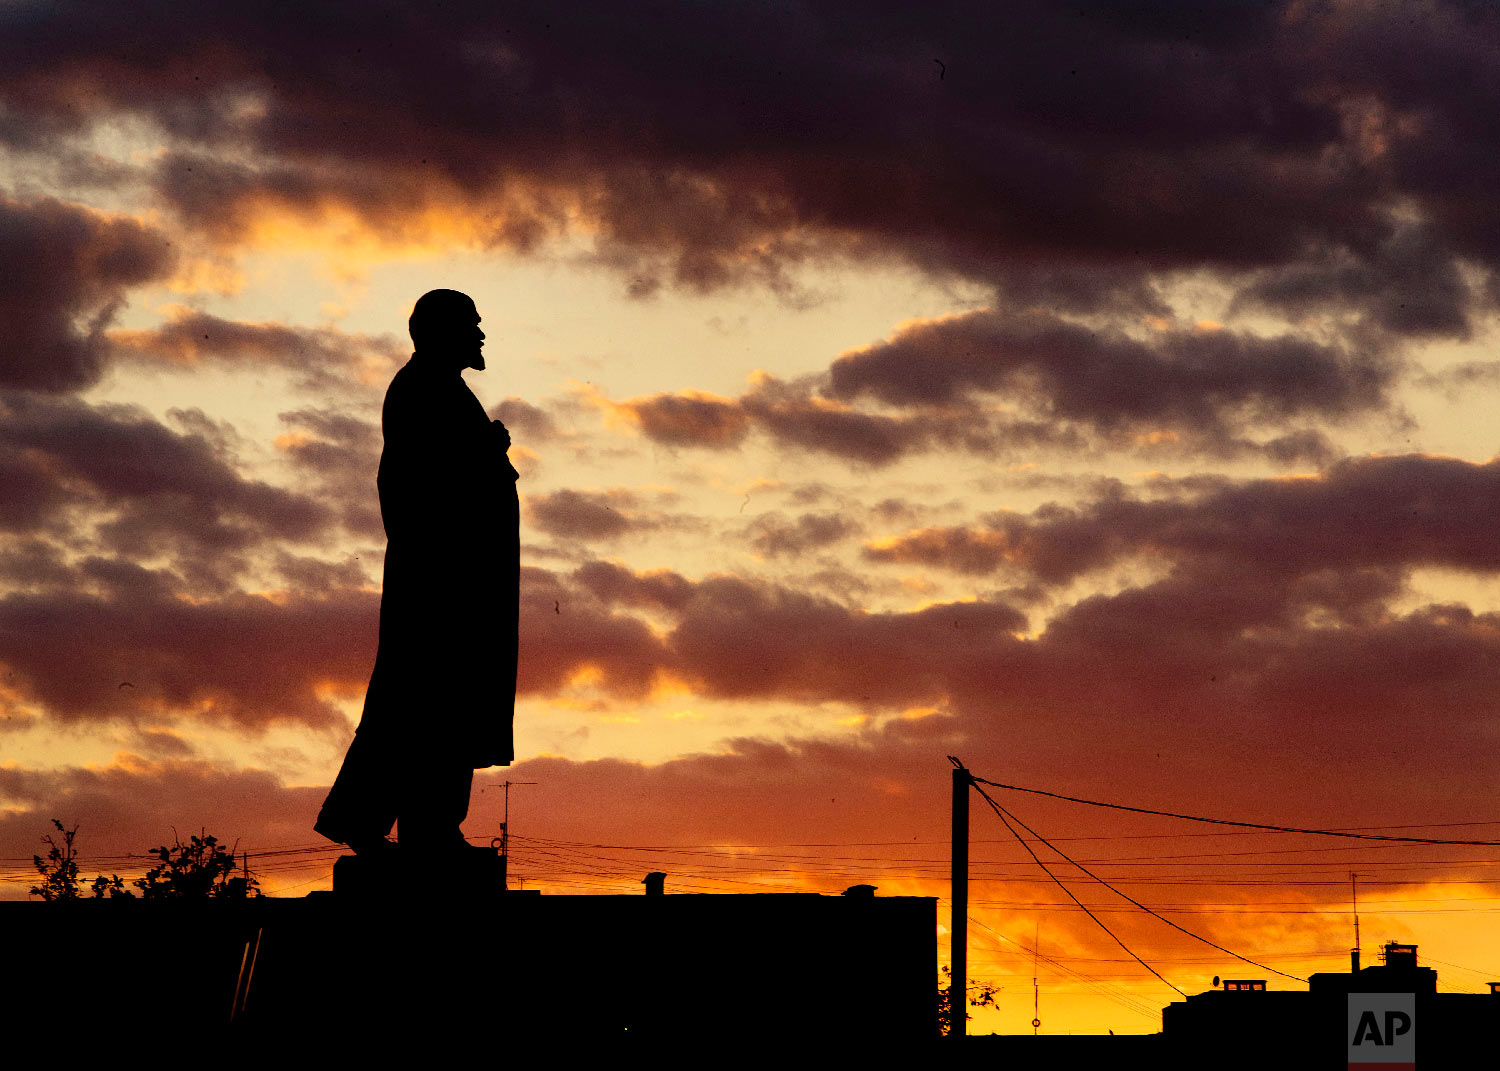 A Lenin statue stands on a column as the sun sets during the 2018 soccer World Cup in Podolsk near Moscow, Russia on June 21, 2018. (AP Photo/Michael Probst)